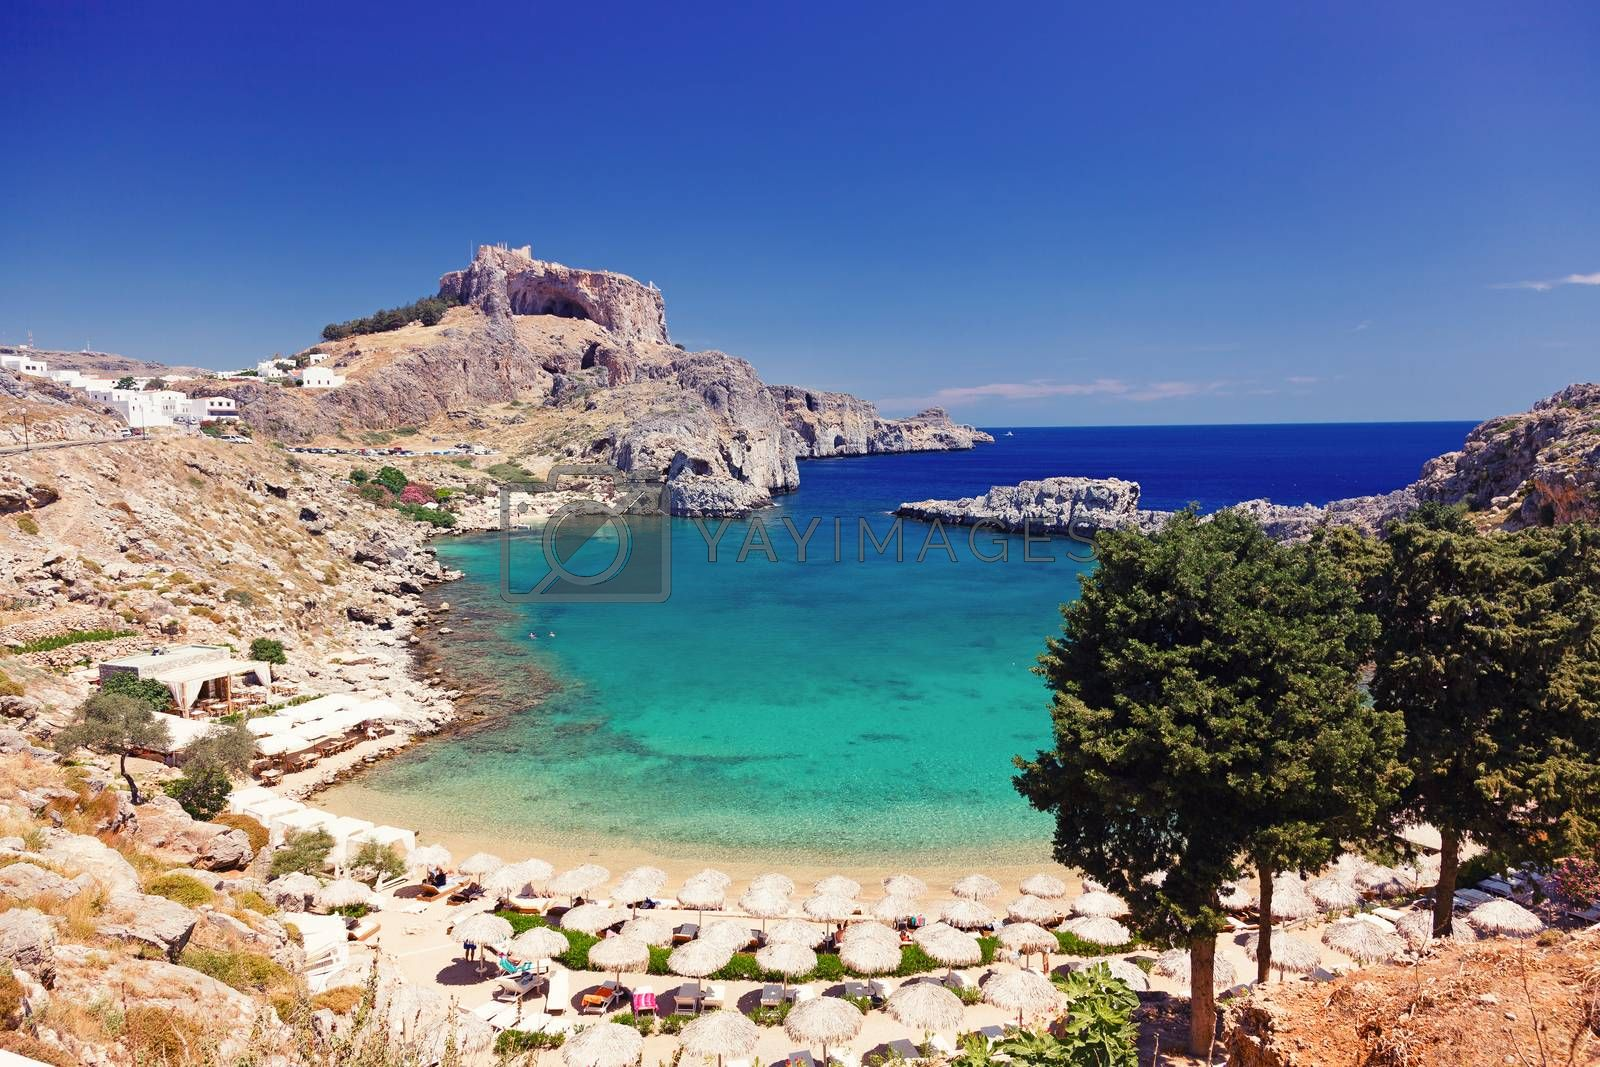 St. Paul's Bay in Lindos, Rhodes, Greece